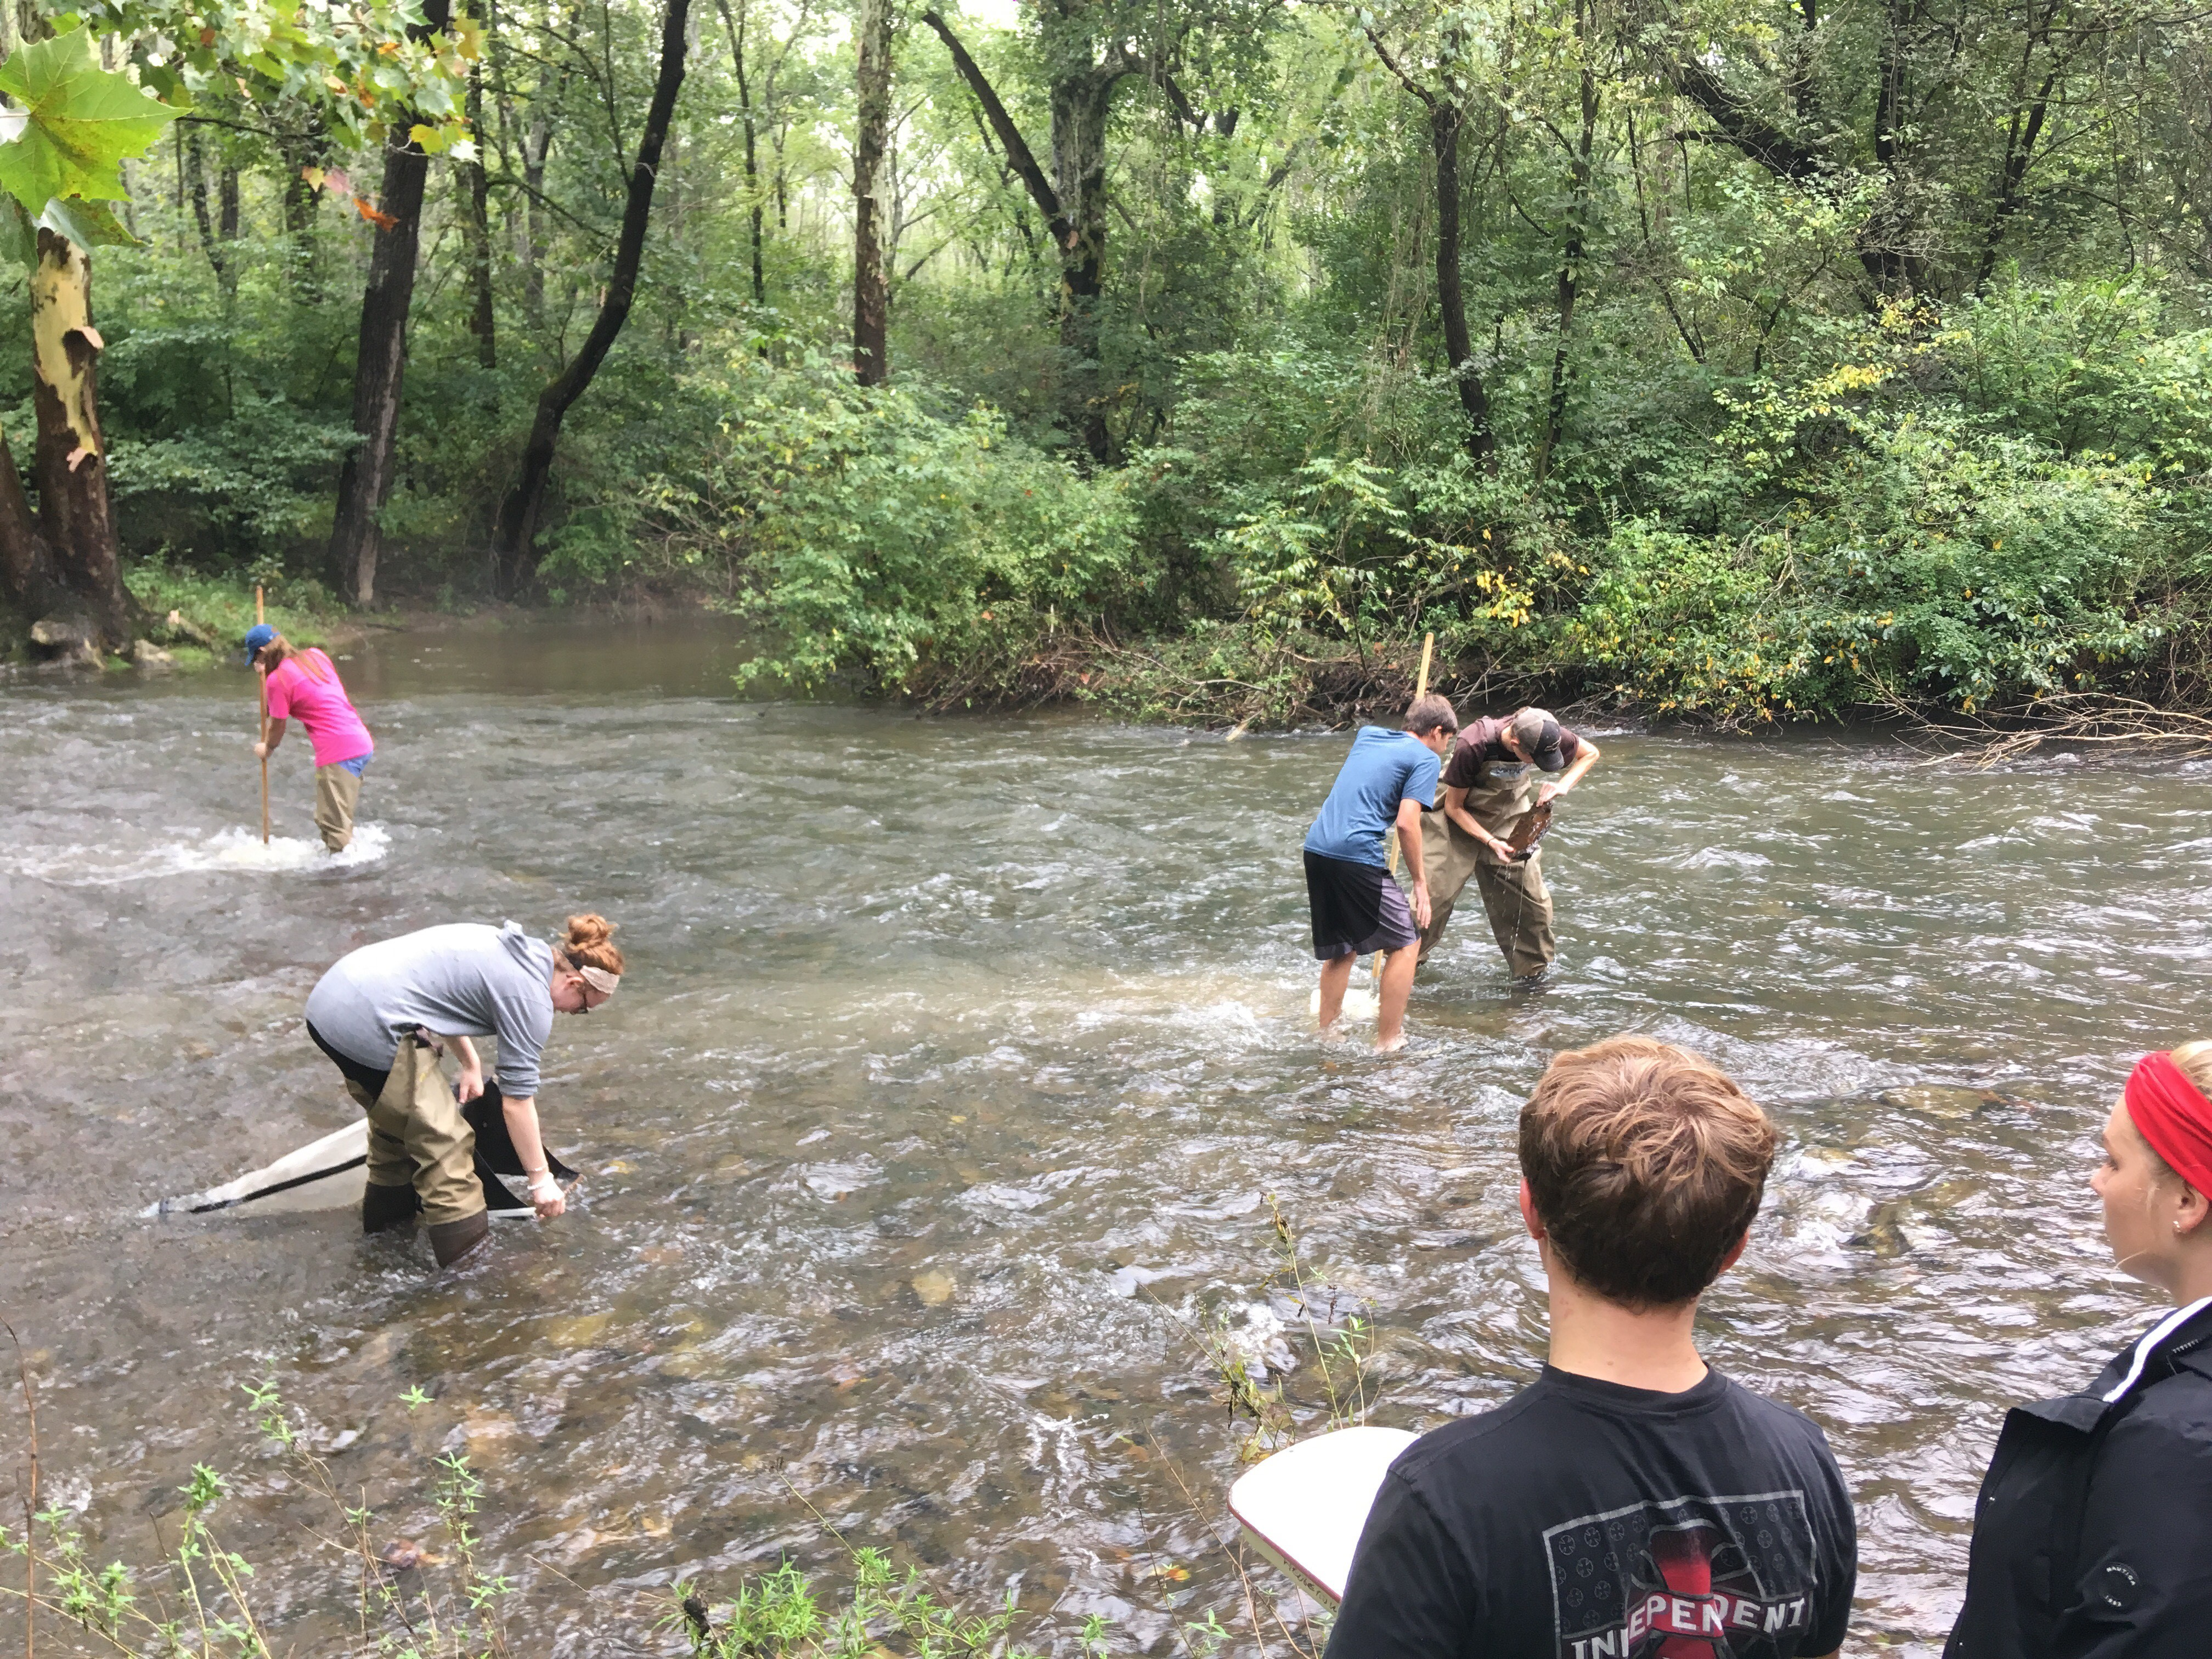 students wading in stream with nets and students standing on side of stream with notebooks